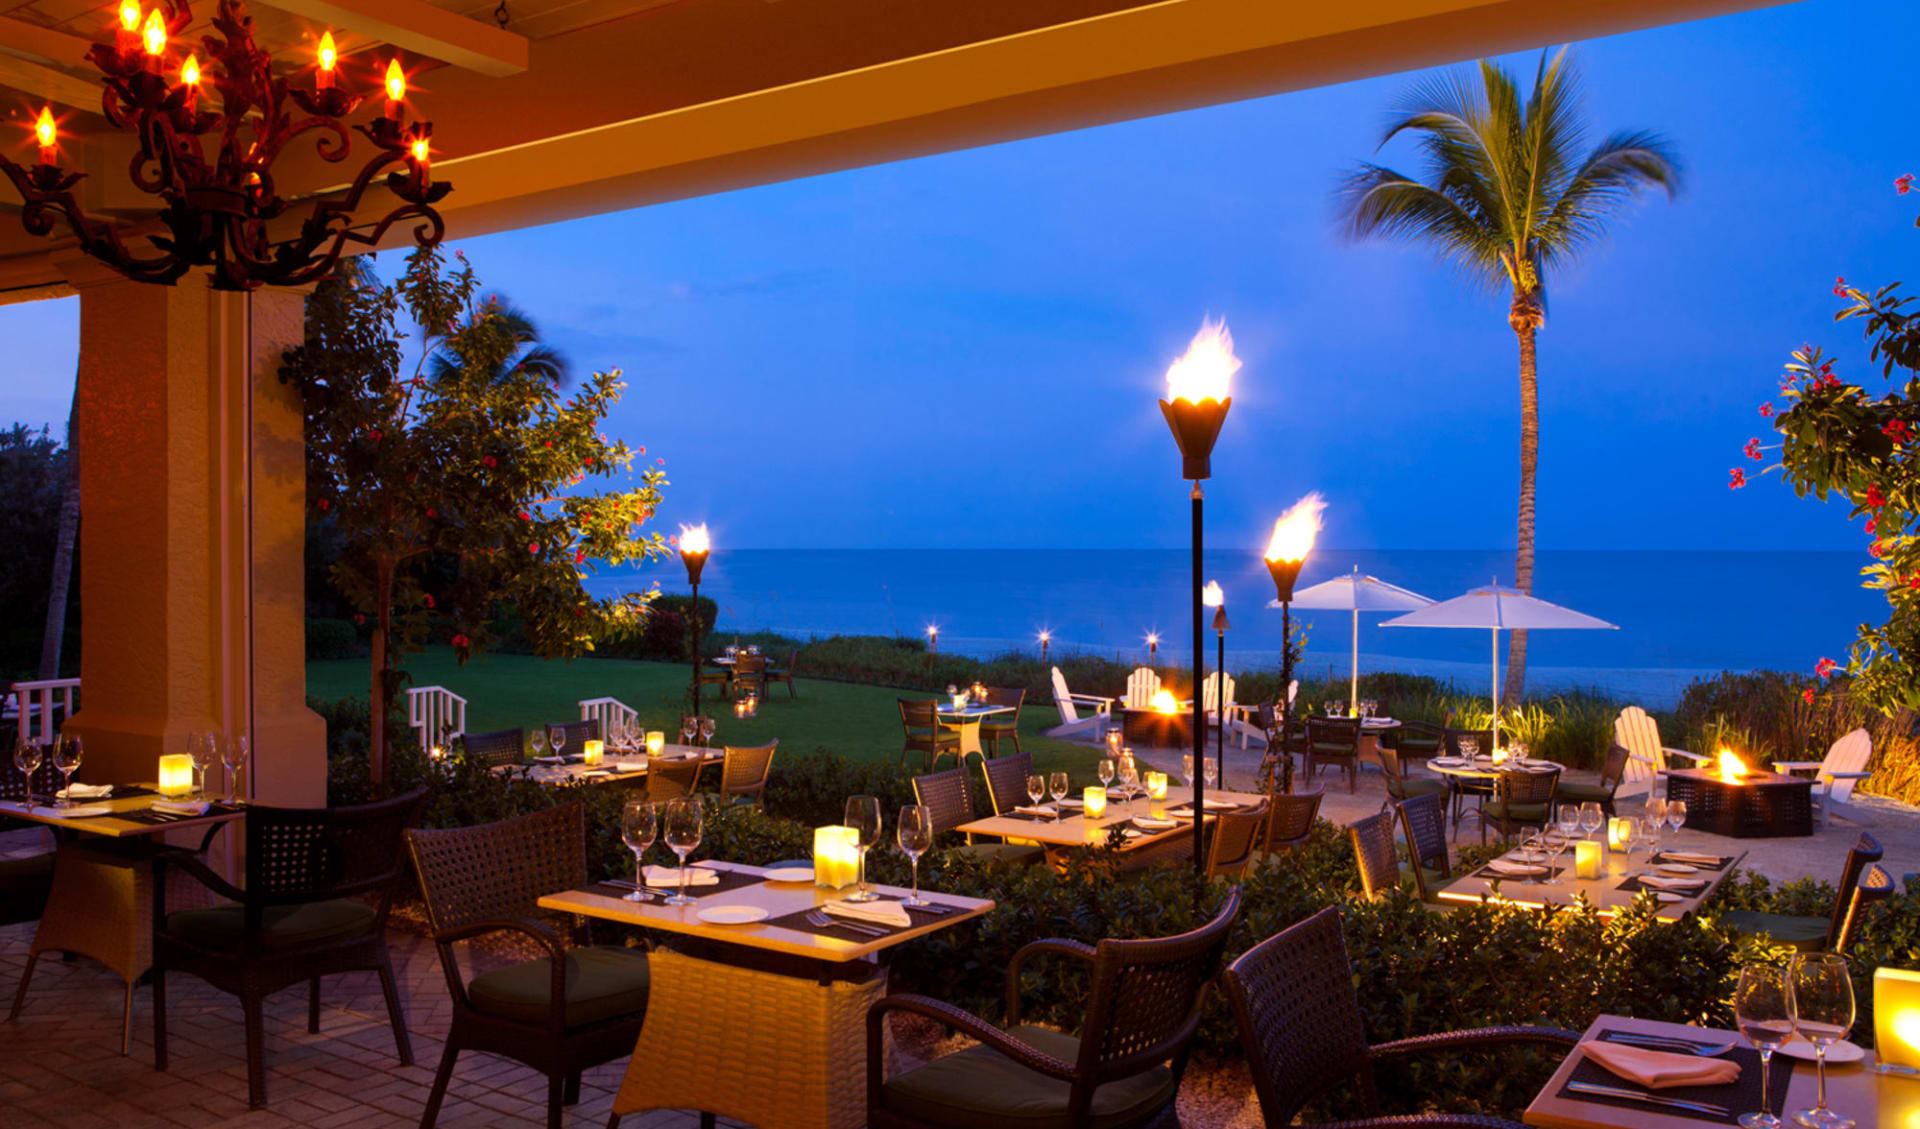 La Playa Beach Resort in Naples:  LaPlaya Beach & Golf Resort - Baleen Restaurant